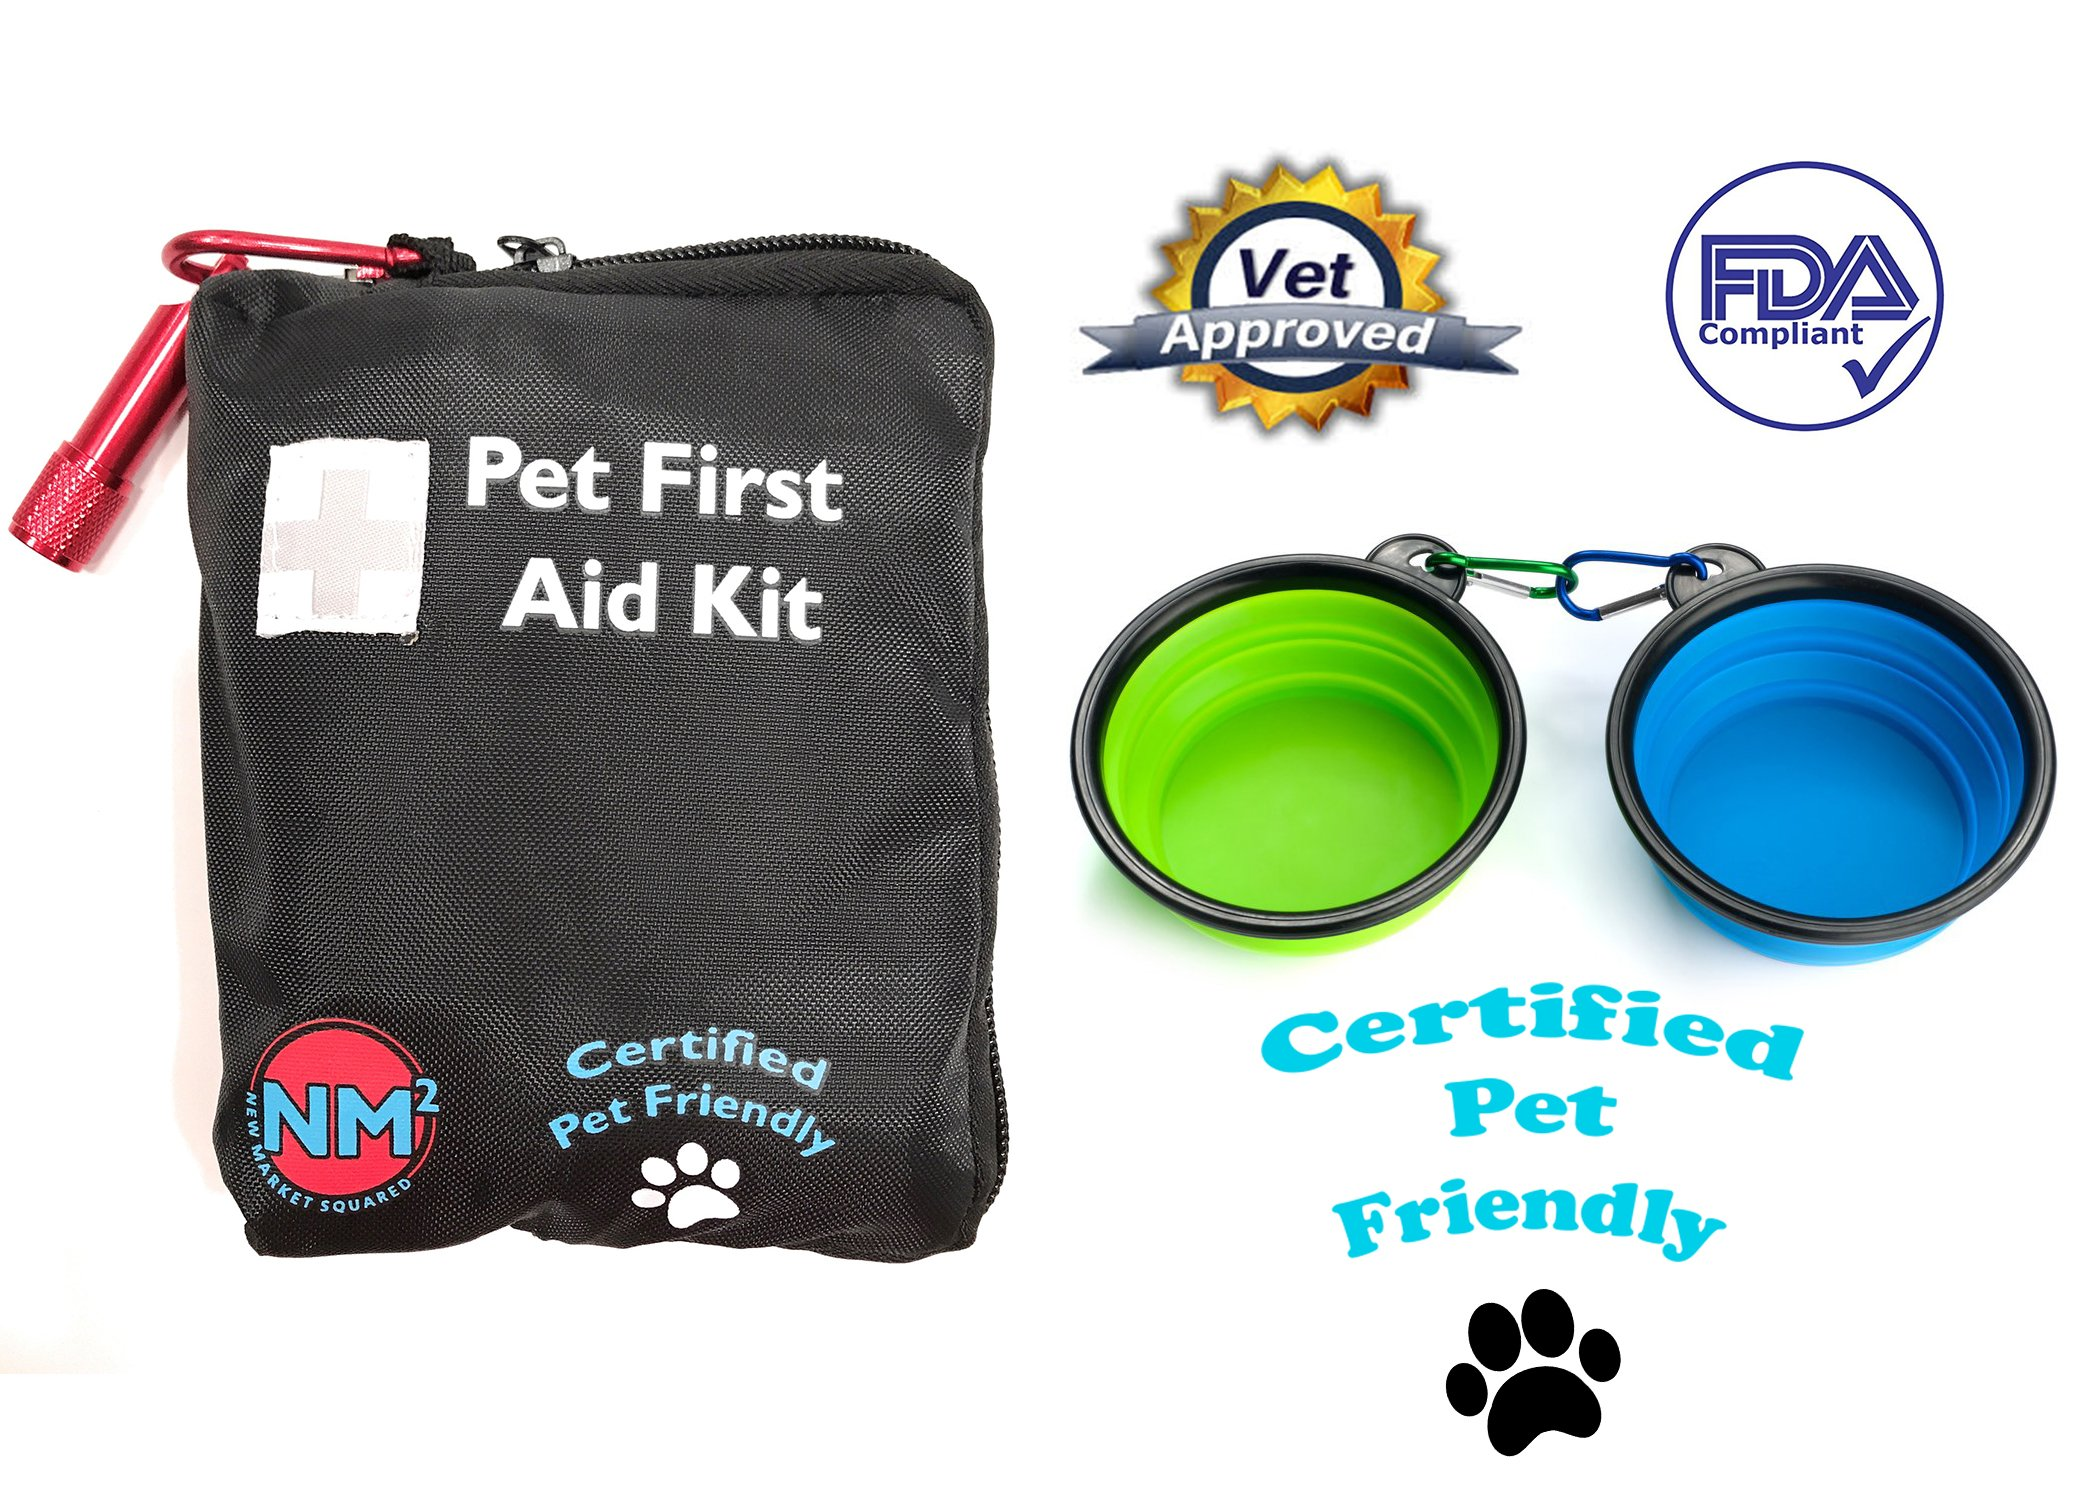 Pet First Aid Kit for Dogs And Cats | 25 Piece First Aid Kit For Your Pets | Perfect for Home, Travel, Camping, And Hiking | Comprehensive Pet Emergency Care Handbook | Certified Pet Friendly